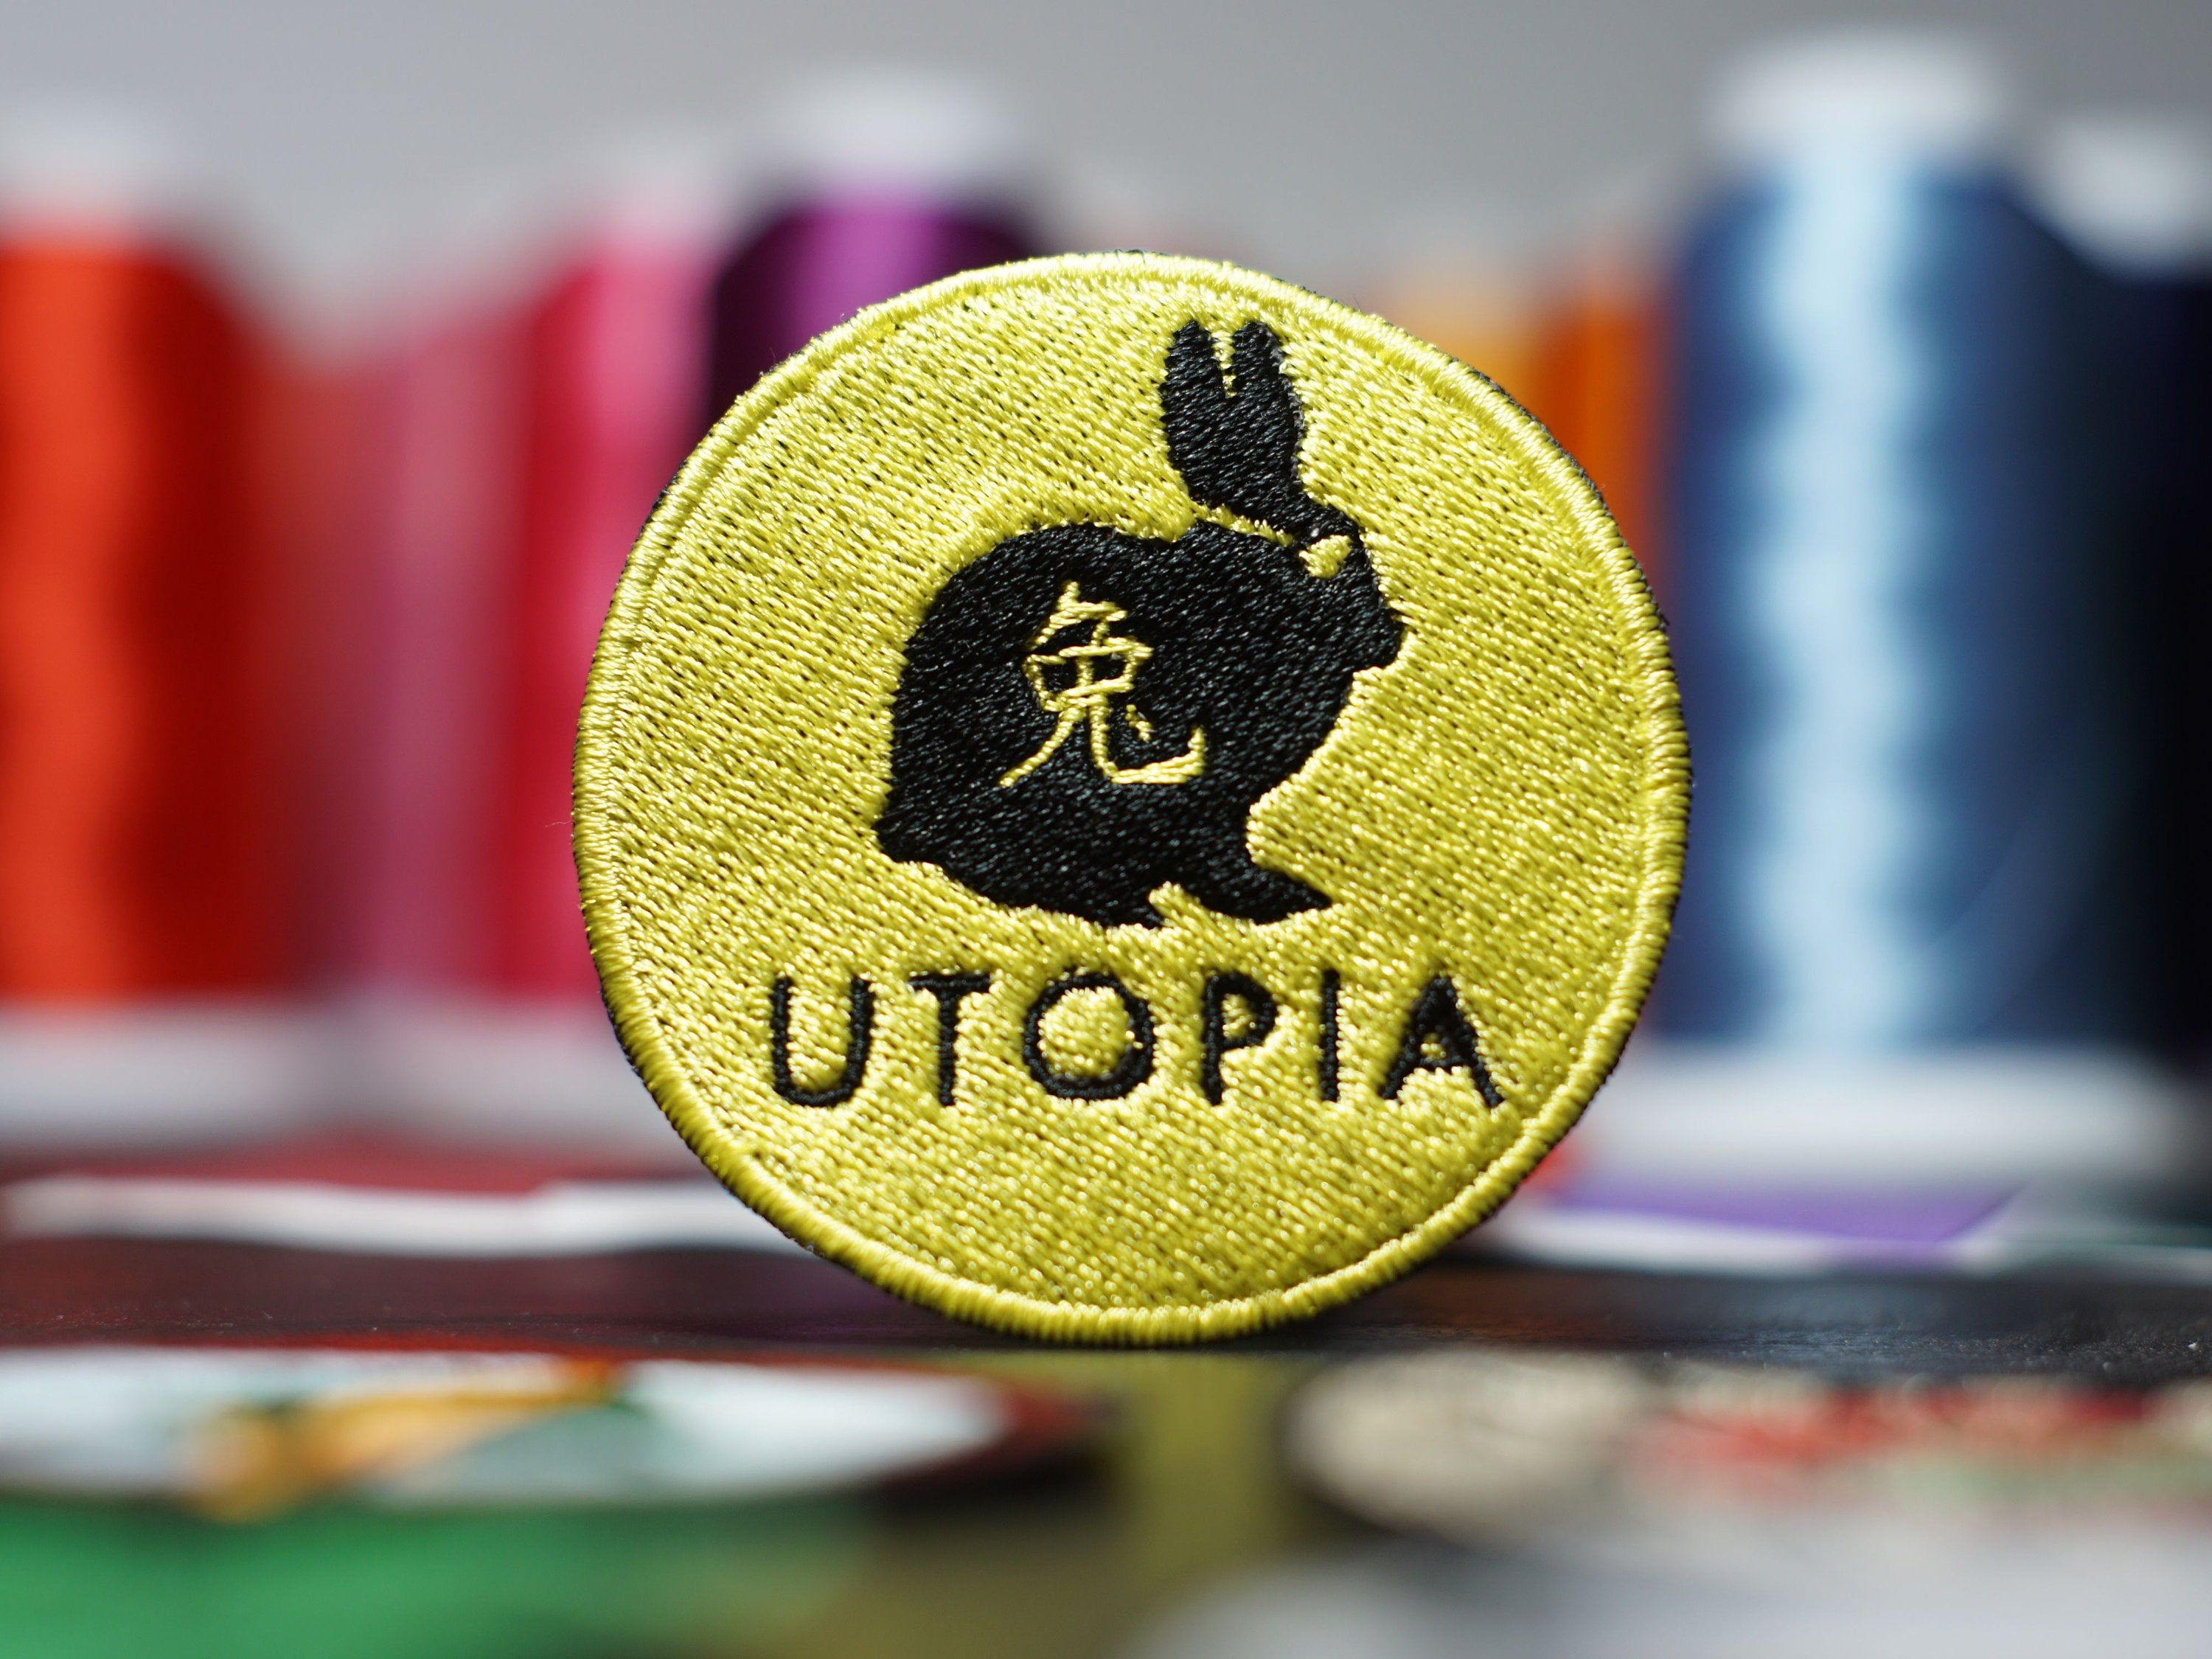 Utopia Rabbit Embroidery Patch Iron On Sew On 2020